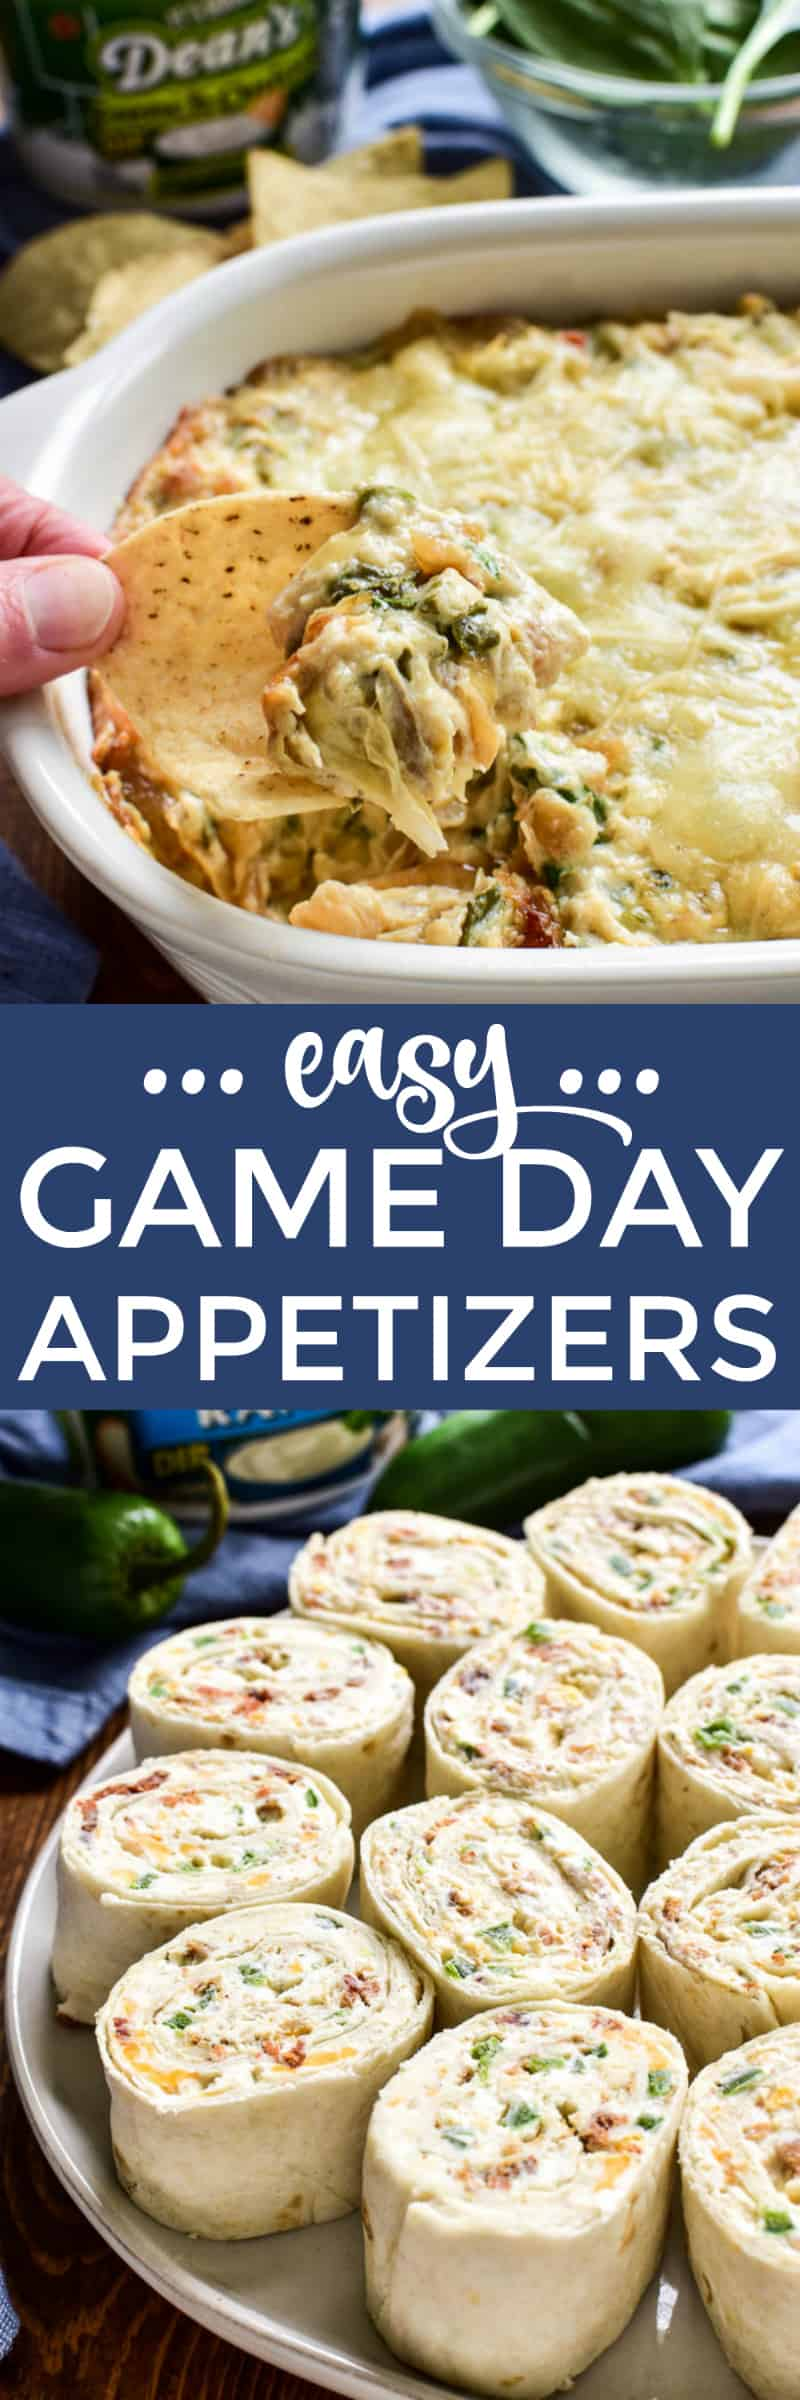 Collage image of game day appetizers: French Onion Spinach Artichoke Dip and Jalapeno Popper Pinwheels